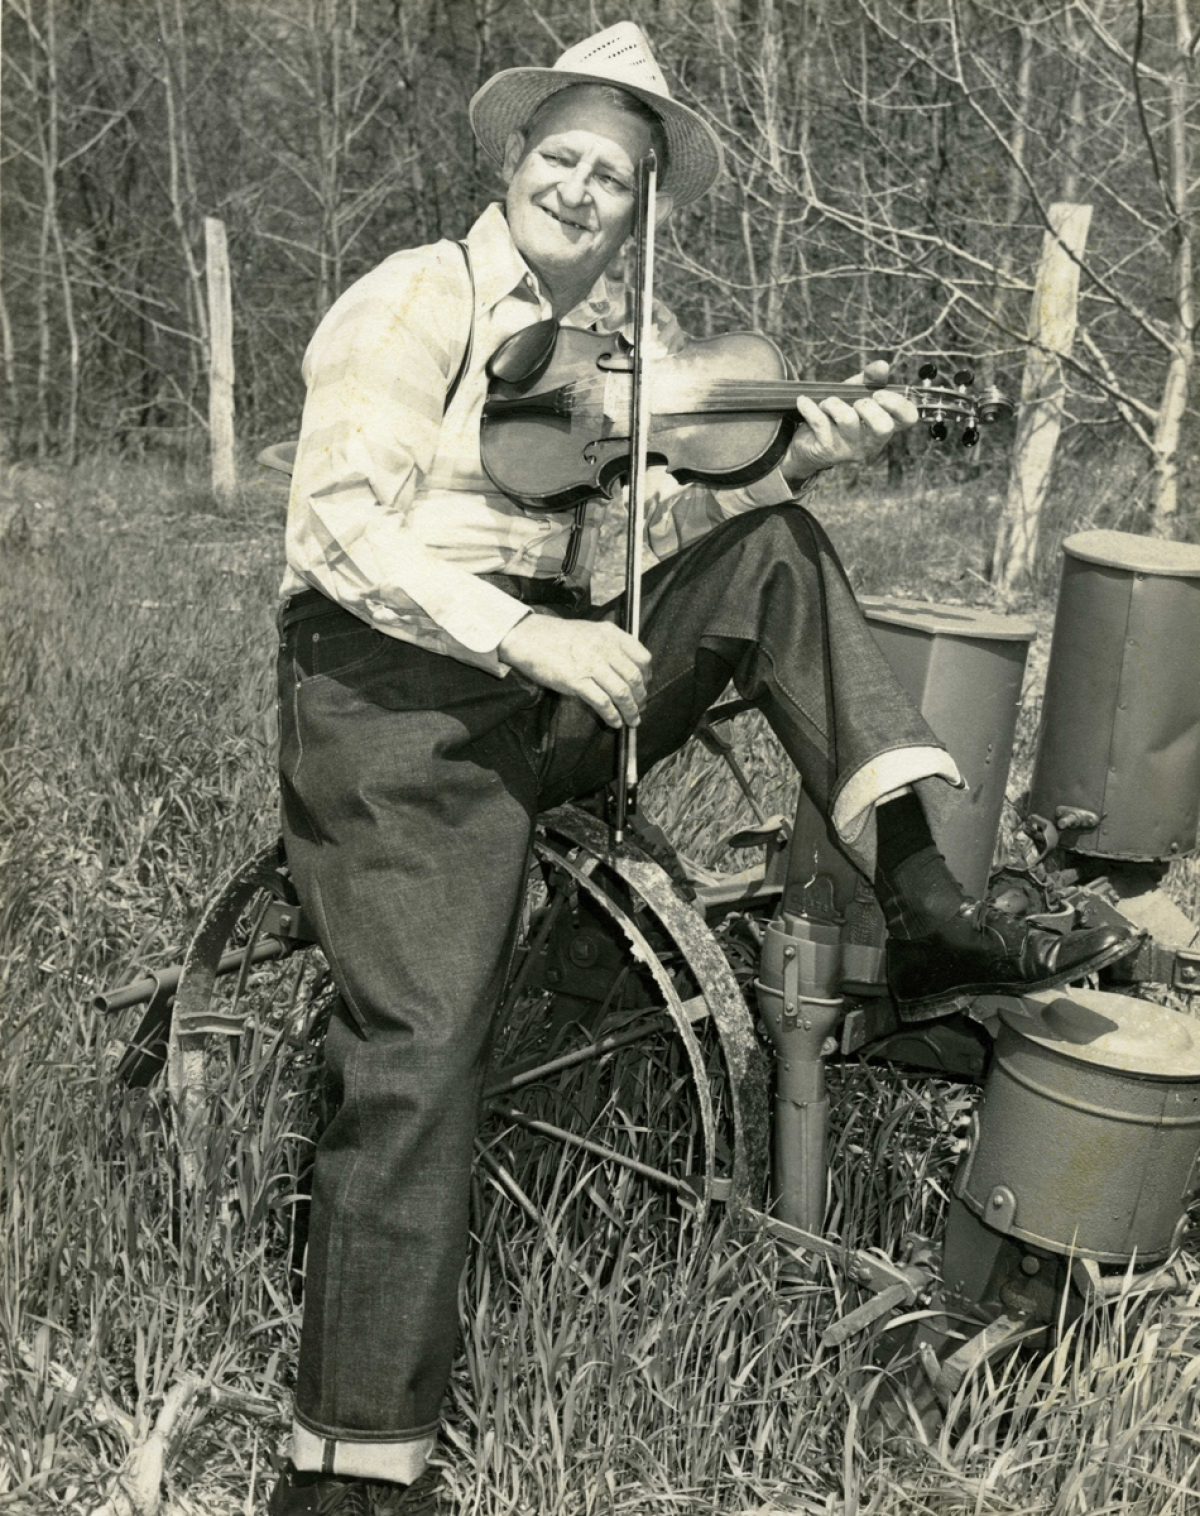 "Born near Weaverville, North Carolina in 1898, Joseph Emmett Mainer learned to play the banjo when he was about nine years old.  In 1923 J. E.'s brother Wade joined him in Concord and the two of them began playing around for dances and shows.  They went to work for the Crazy Water Crystal Company broadcasting over WBT in Charlotte as J. E. Mainer's Crazy Mountaineers.  The group soon played at many other radio stations.  RCA Victor decided to record the group in 1935 for their Bluebird label.  J. E. got Snuffy Jenkins in 1937 to play banjo for him.  Some of the Mainer recordings with Snuffy Jenkins' three-finger picking sound tantalizingly close to what would later be called bluegrass.  His recordings in 1946 resulted in several singles and two albums.  An enduring original from these sessions was ""Run Mountain"". In 1962, Chris Strachwitz of the Arhoolie label visited J. E. in Concord and subsequently cut a new album, ""The Legendary Family from the Blue Ridge Mountains"".   Beginning in 1967, J. E. cut a series of 20 albums for Uncle Jim O'Neal's Rural Rhythm label, guested on the WWVA Jamboree and played numerous festivals. Two re-issues on Strachwitz's Old Timey label of early material, along with J. E.'s album from 1946 and a pair of albums that J. E. put out helped keep his earlier material in print. J. E. Mainer stayed active in music until his death in 1971."